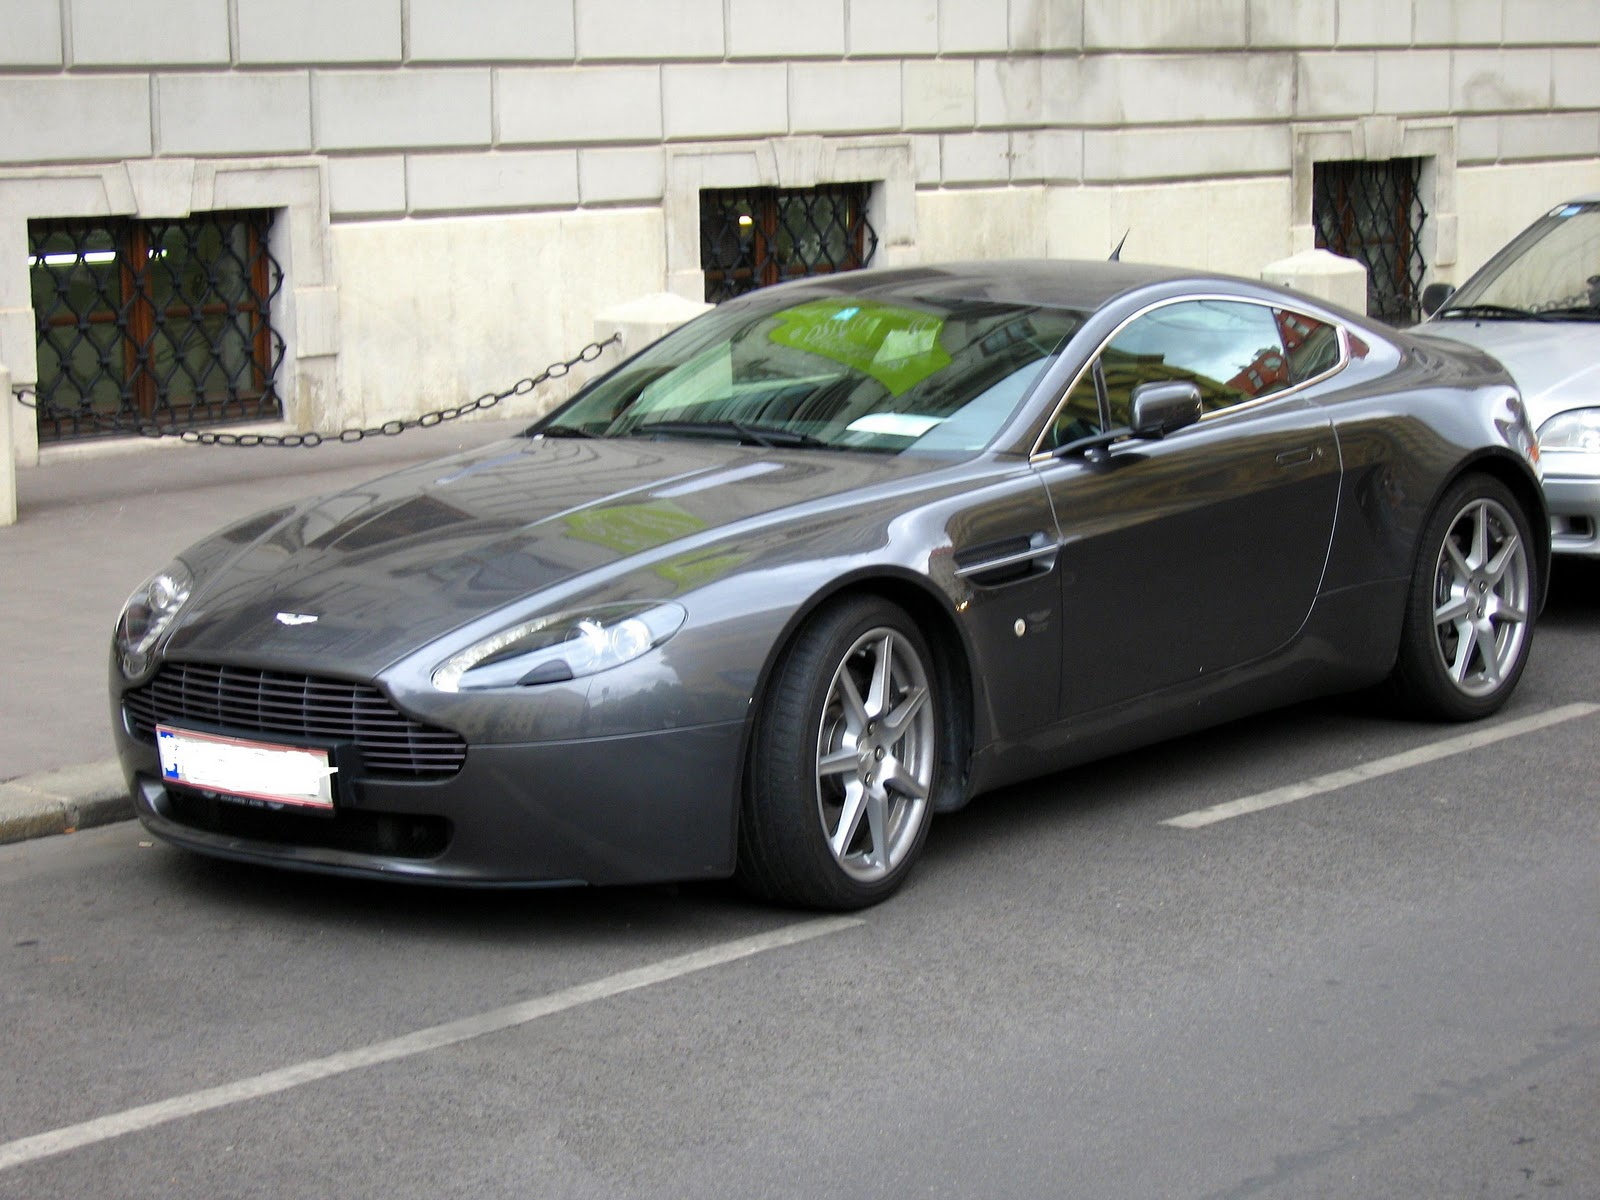 Car News: Aston Martin V8 Vantage